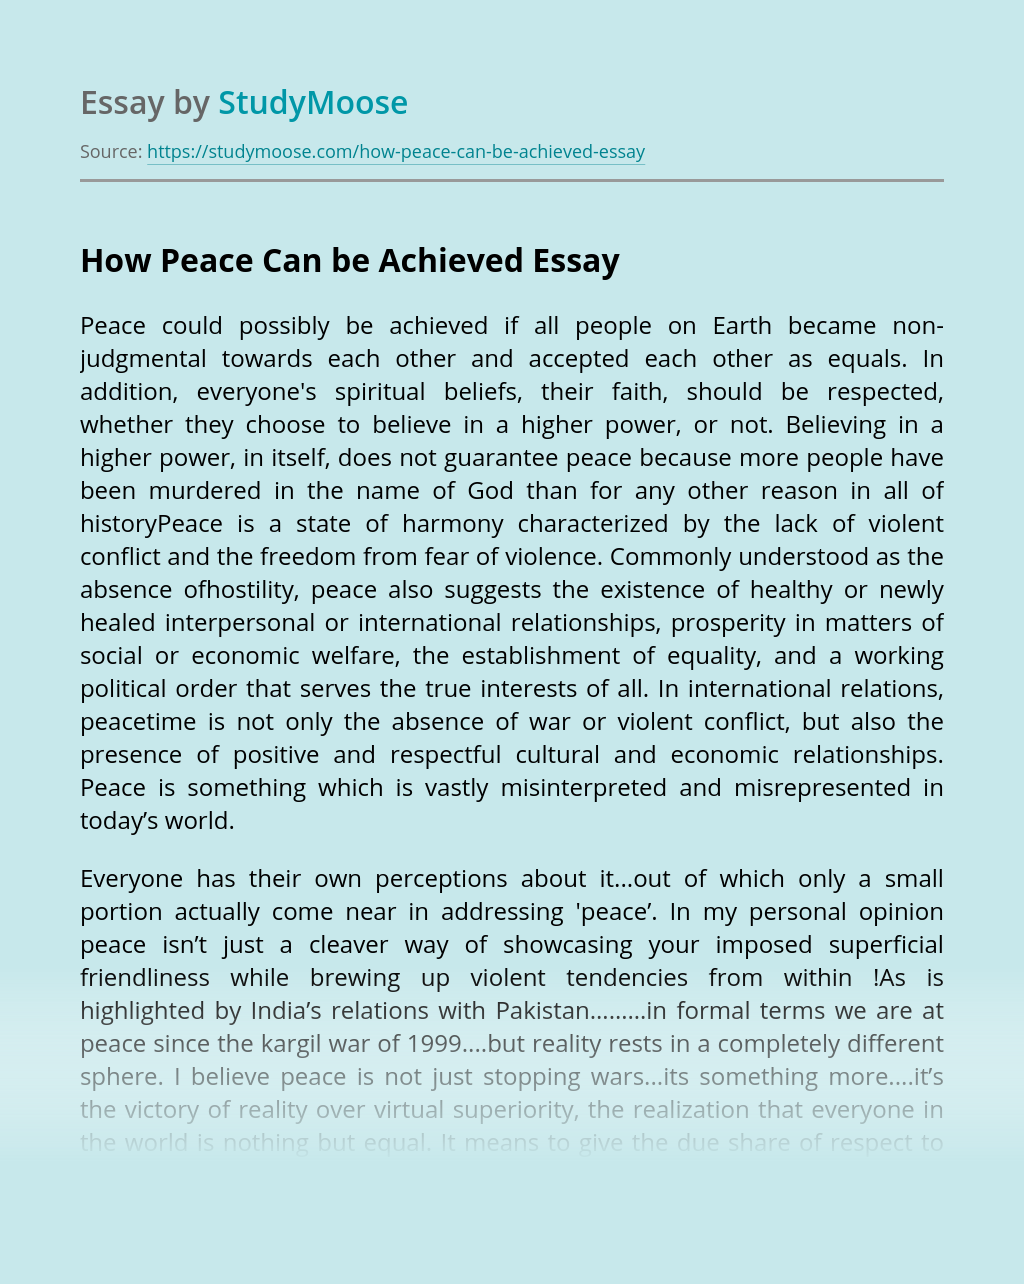 How Peace Can be Achieved